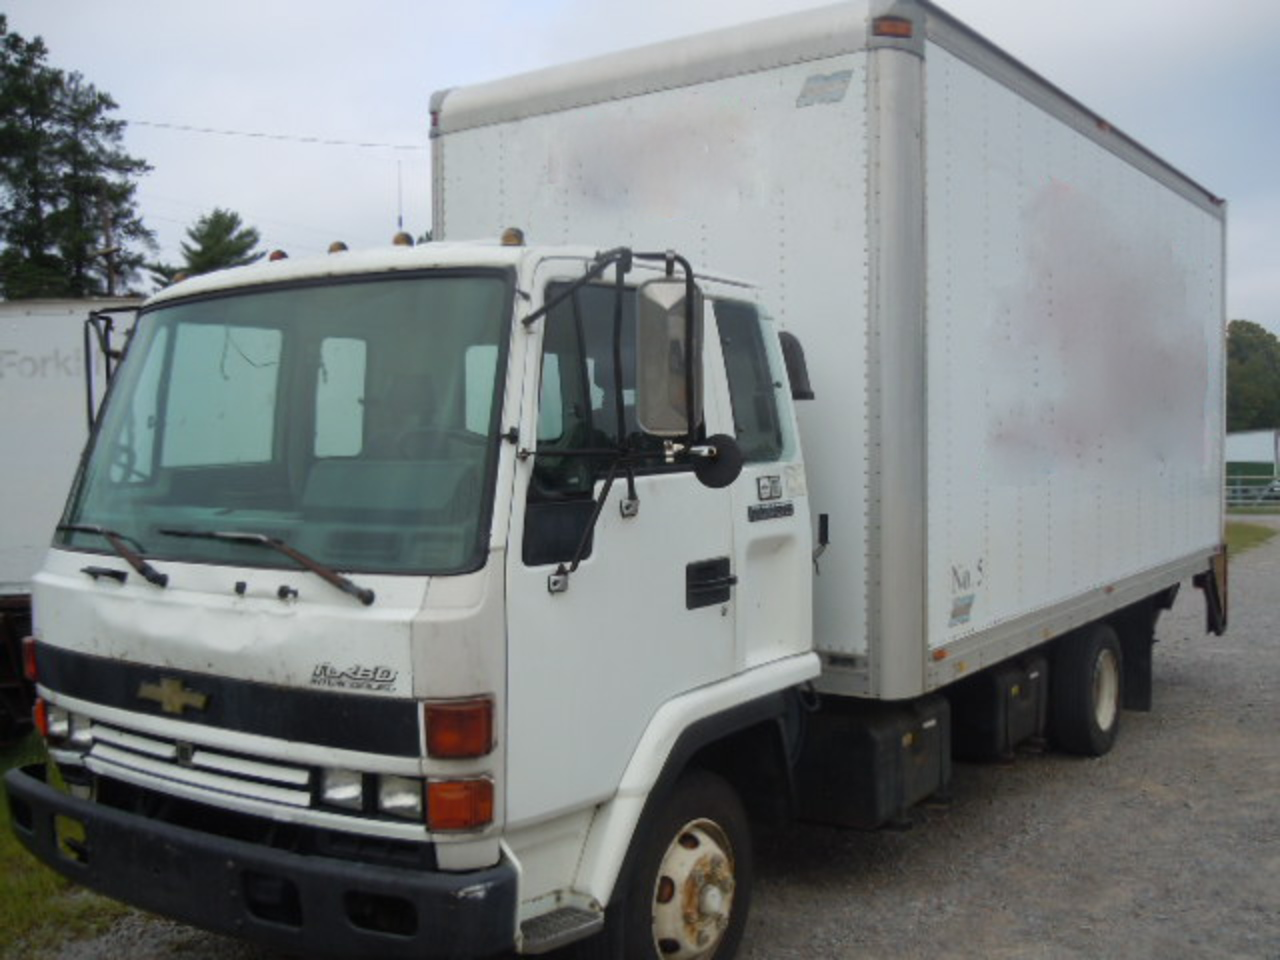 Isuzu Frr Fuse Box Explained Wiring Diagrams 1995 Pickup Image Of Chevy Diesel Truck For Sale 2004